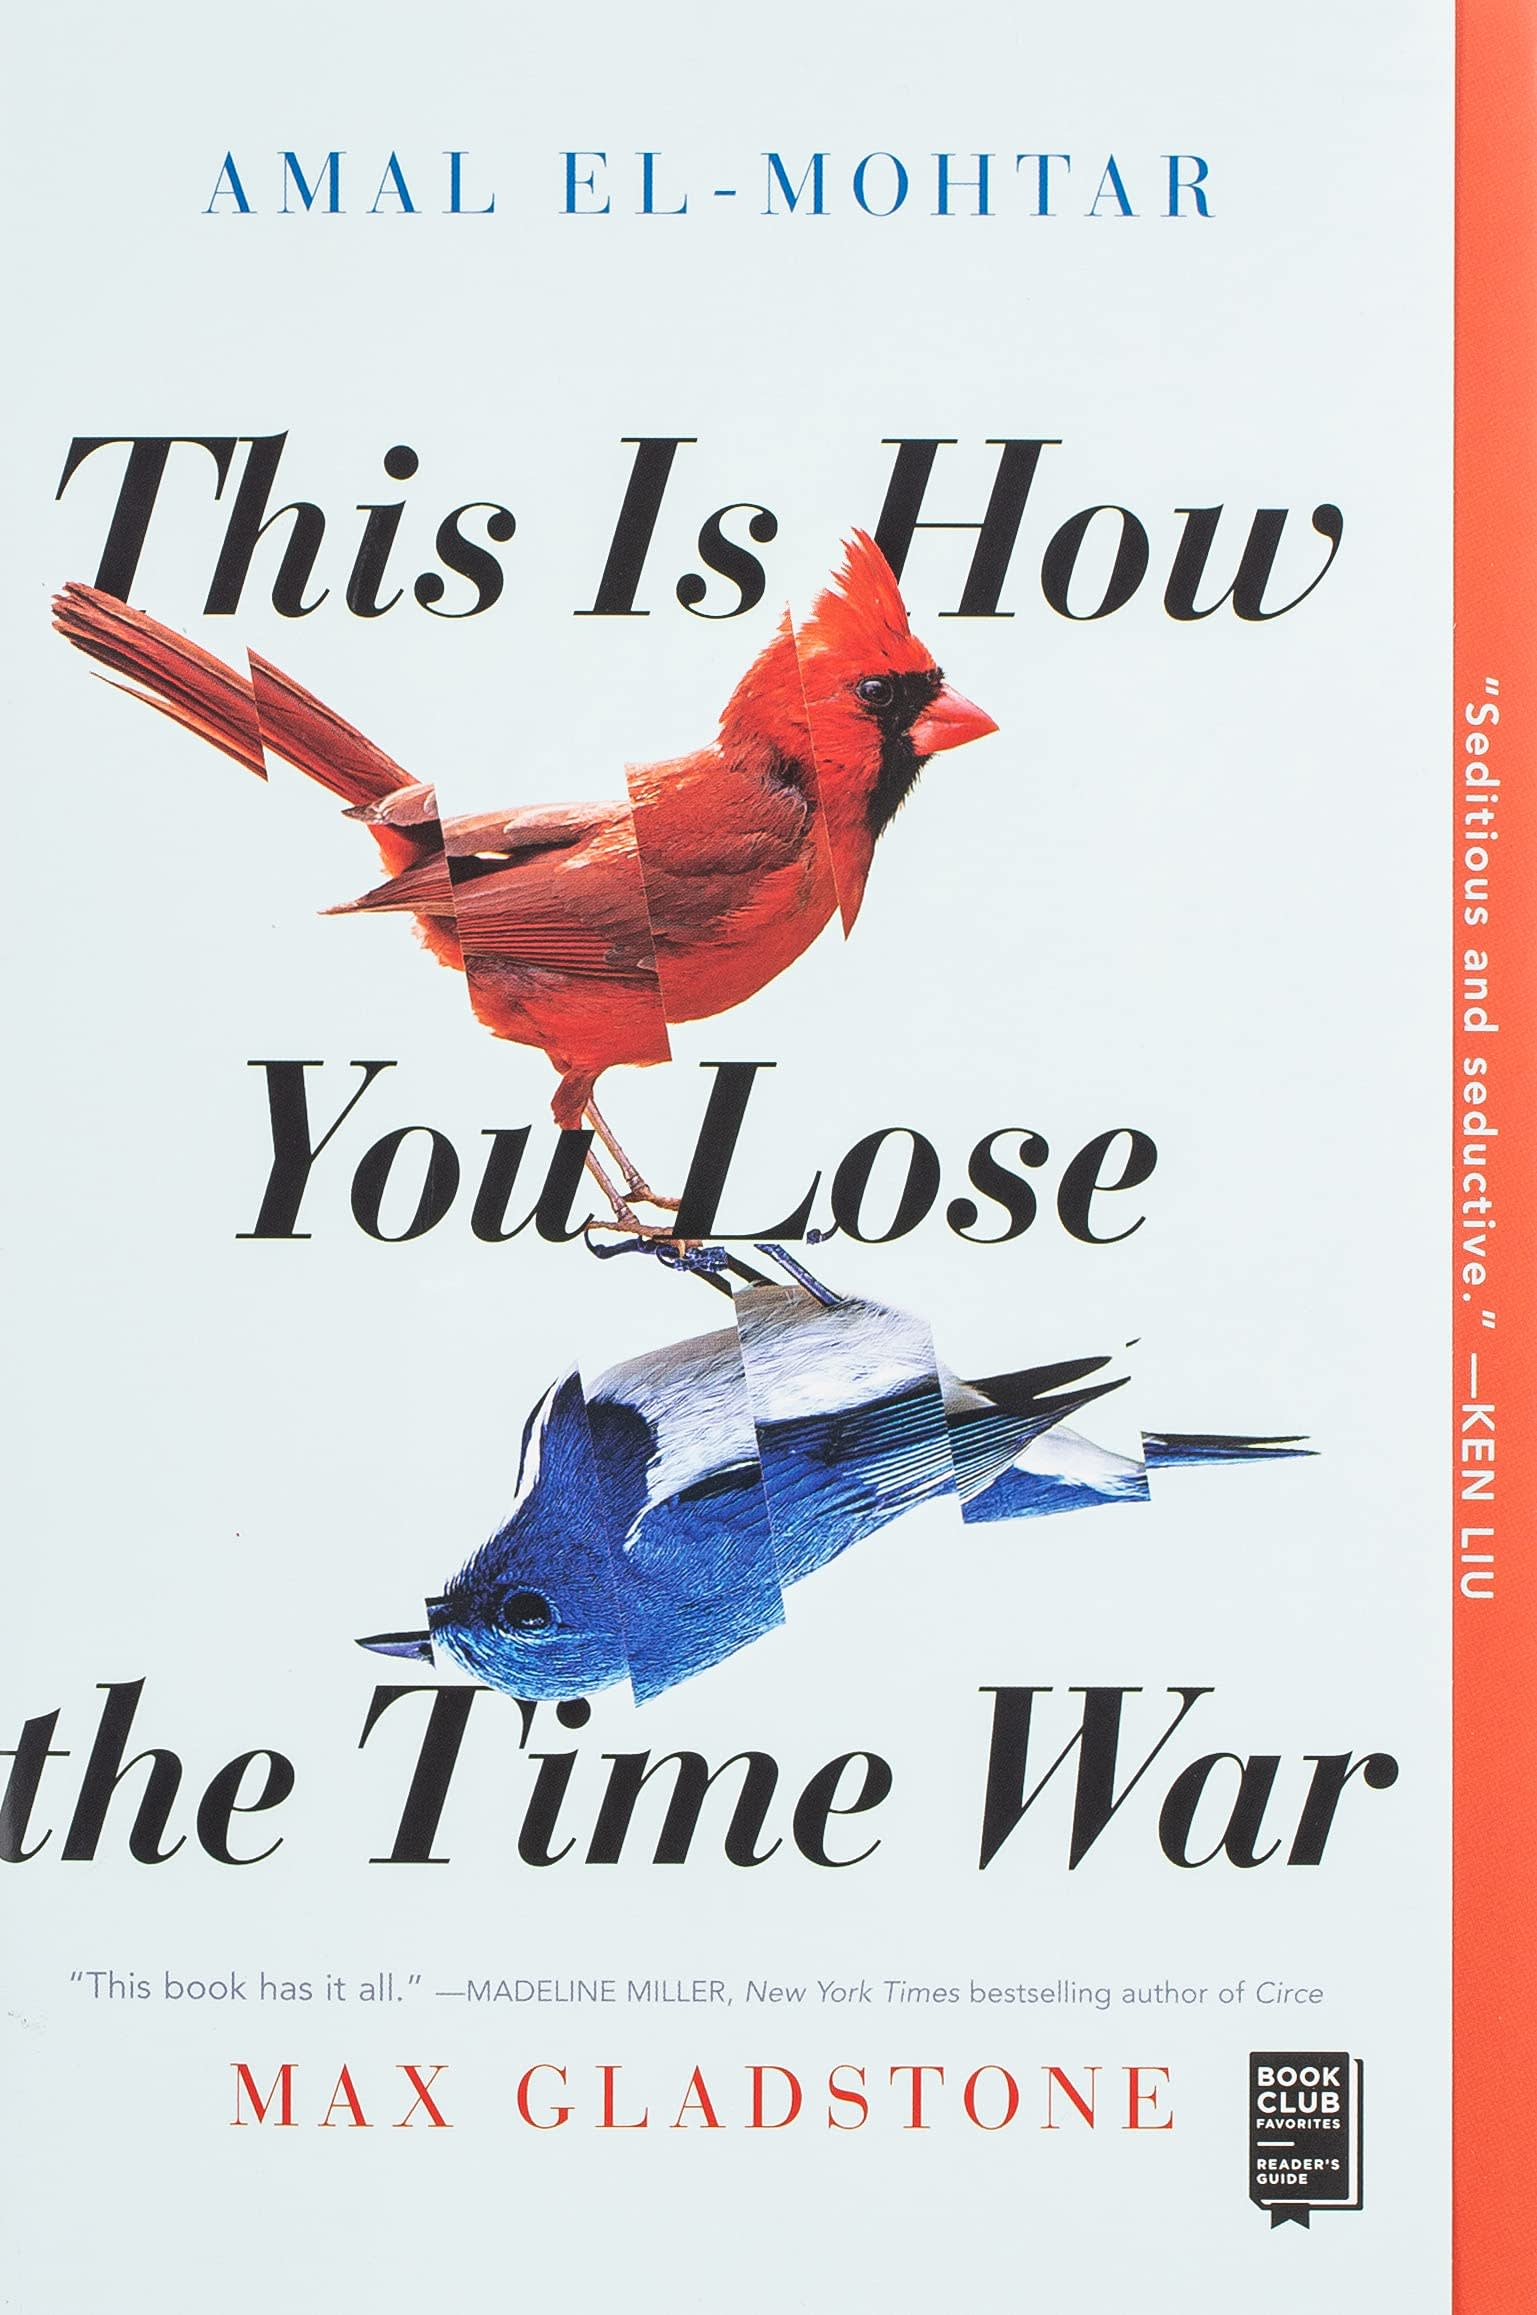 Discover Gallery/Saga Press's 'This is How You Lose the Time War' by Amal El-Mohtar and Max Gladstone on Amazon.